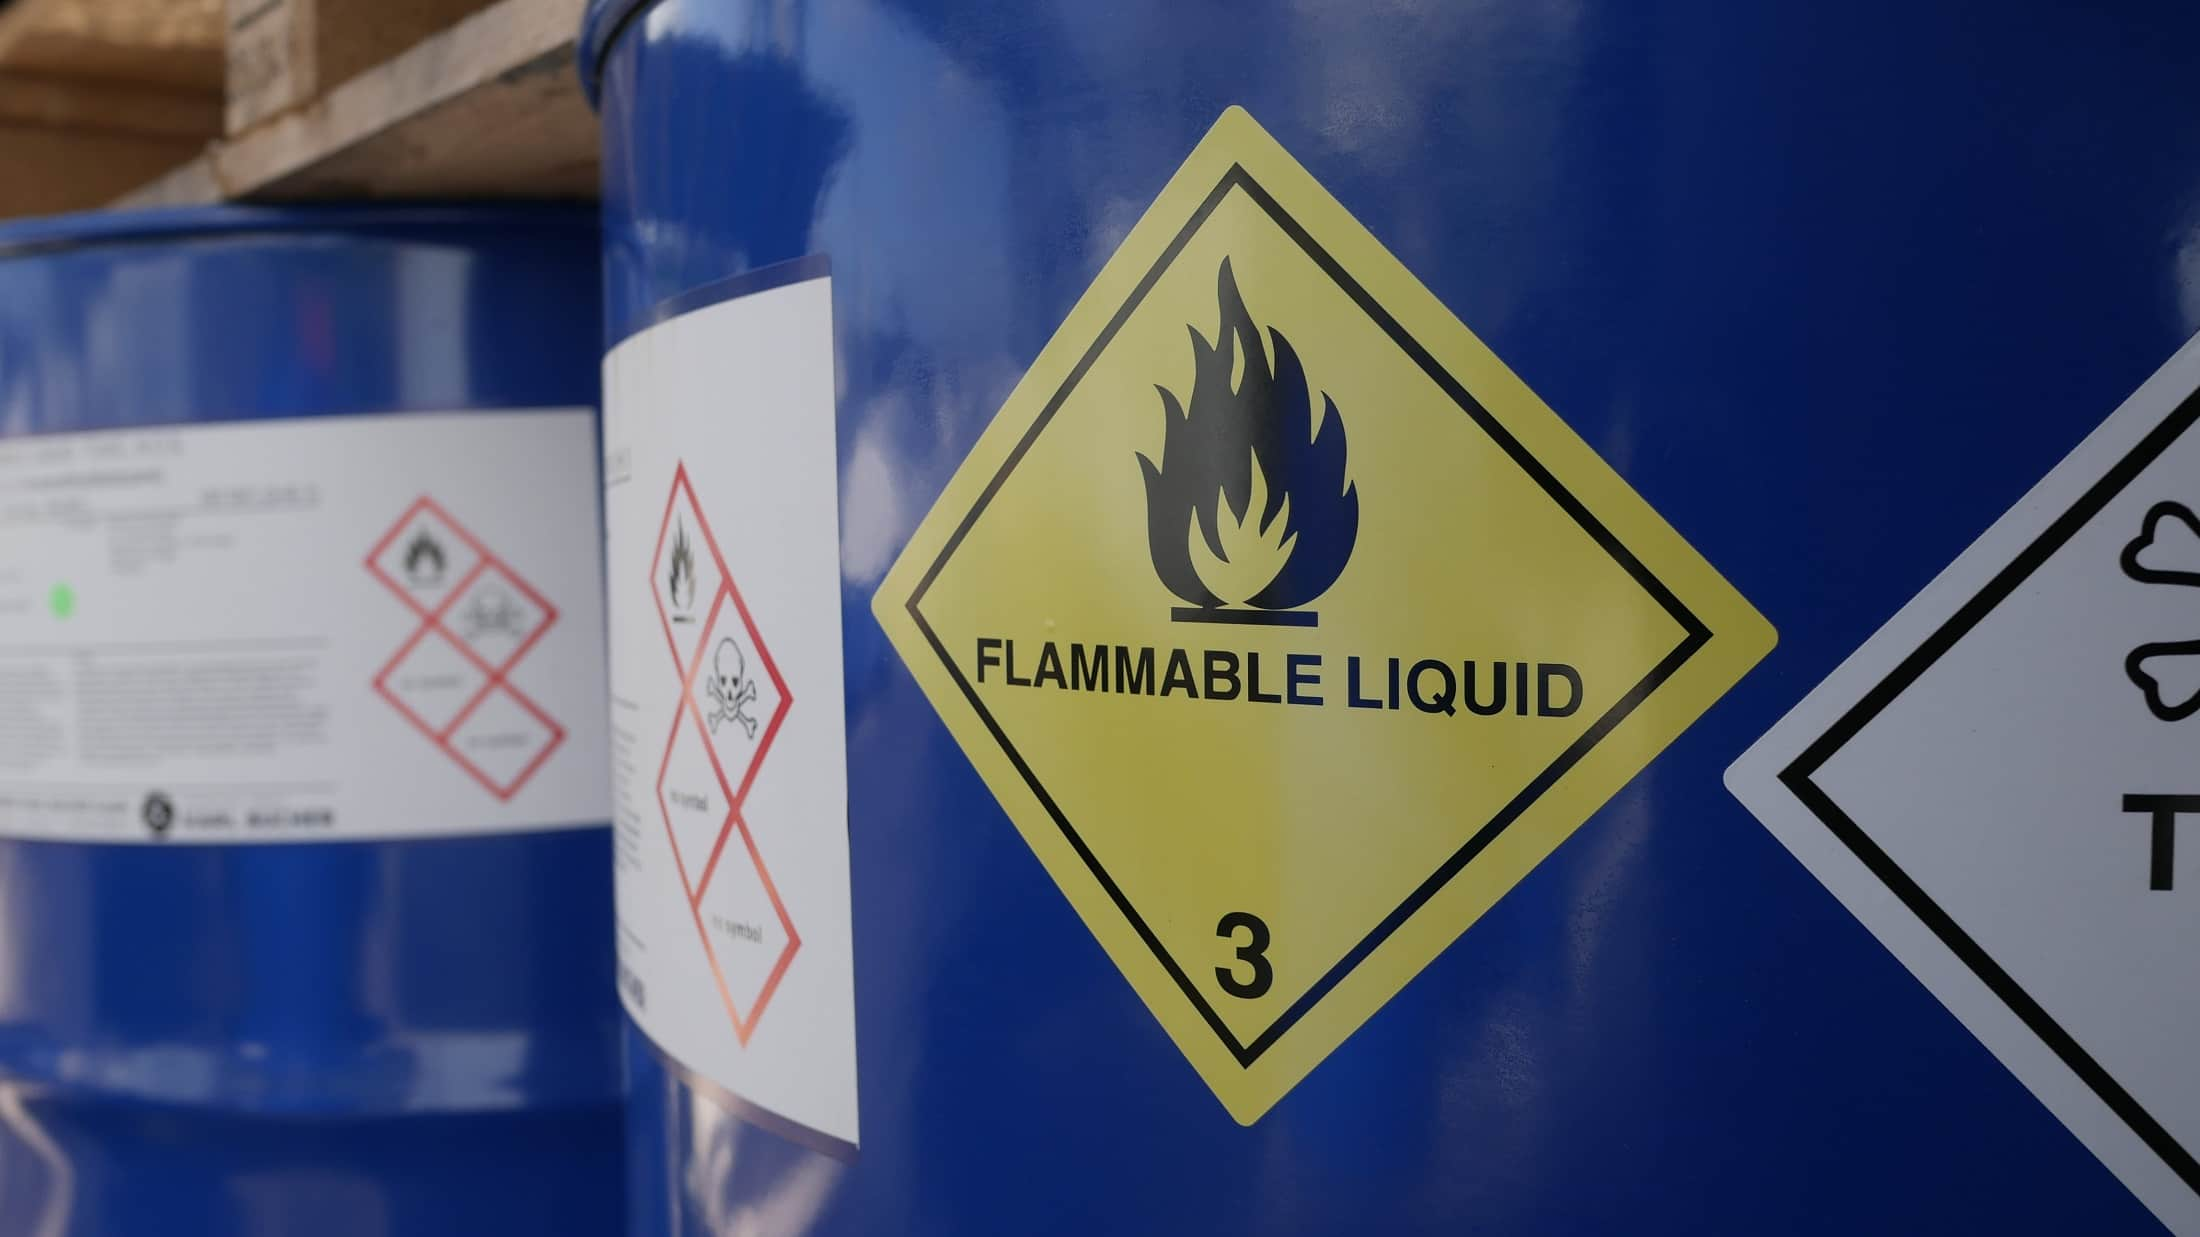 Keeping oxidisers and flammable liquids apart